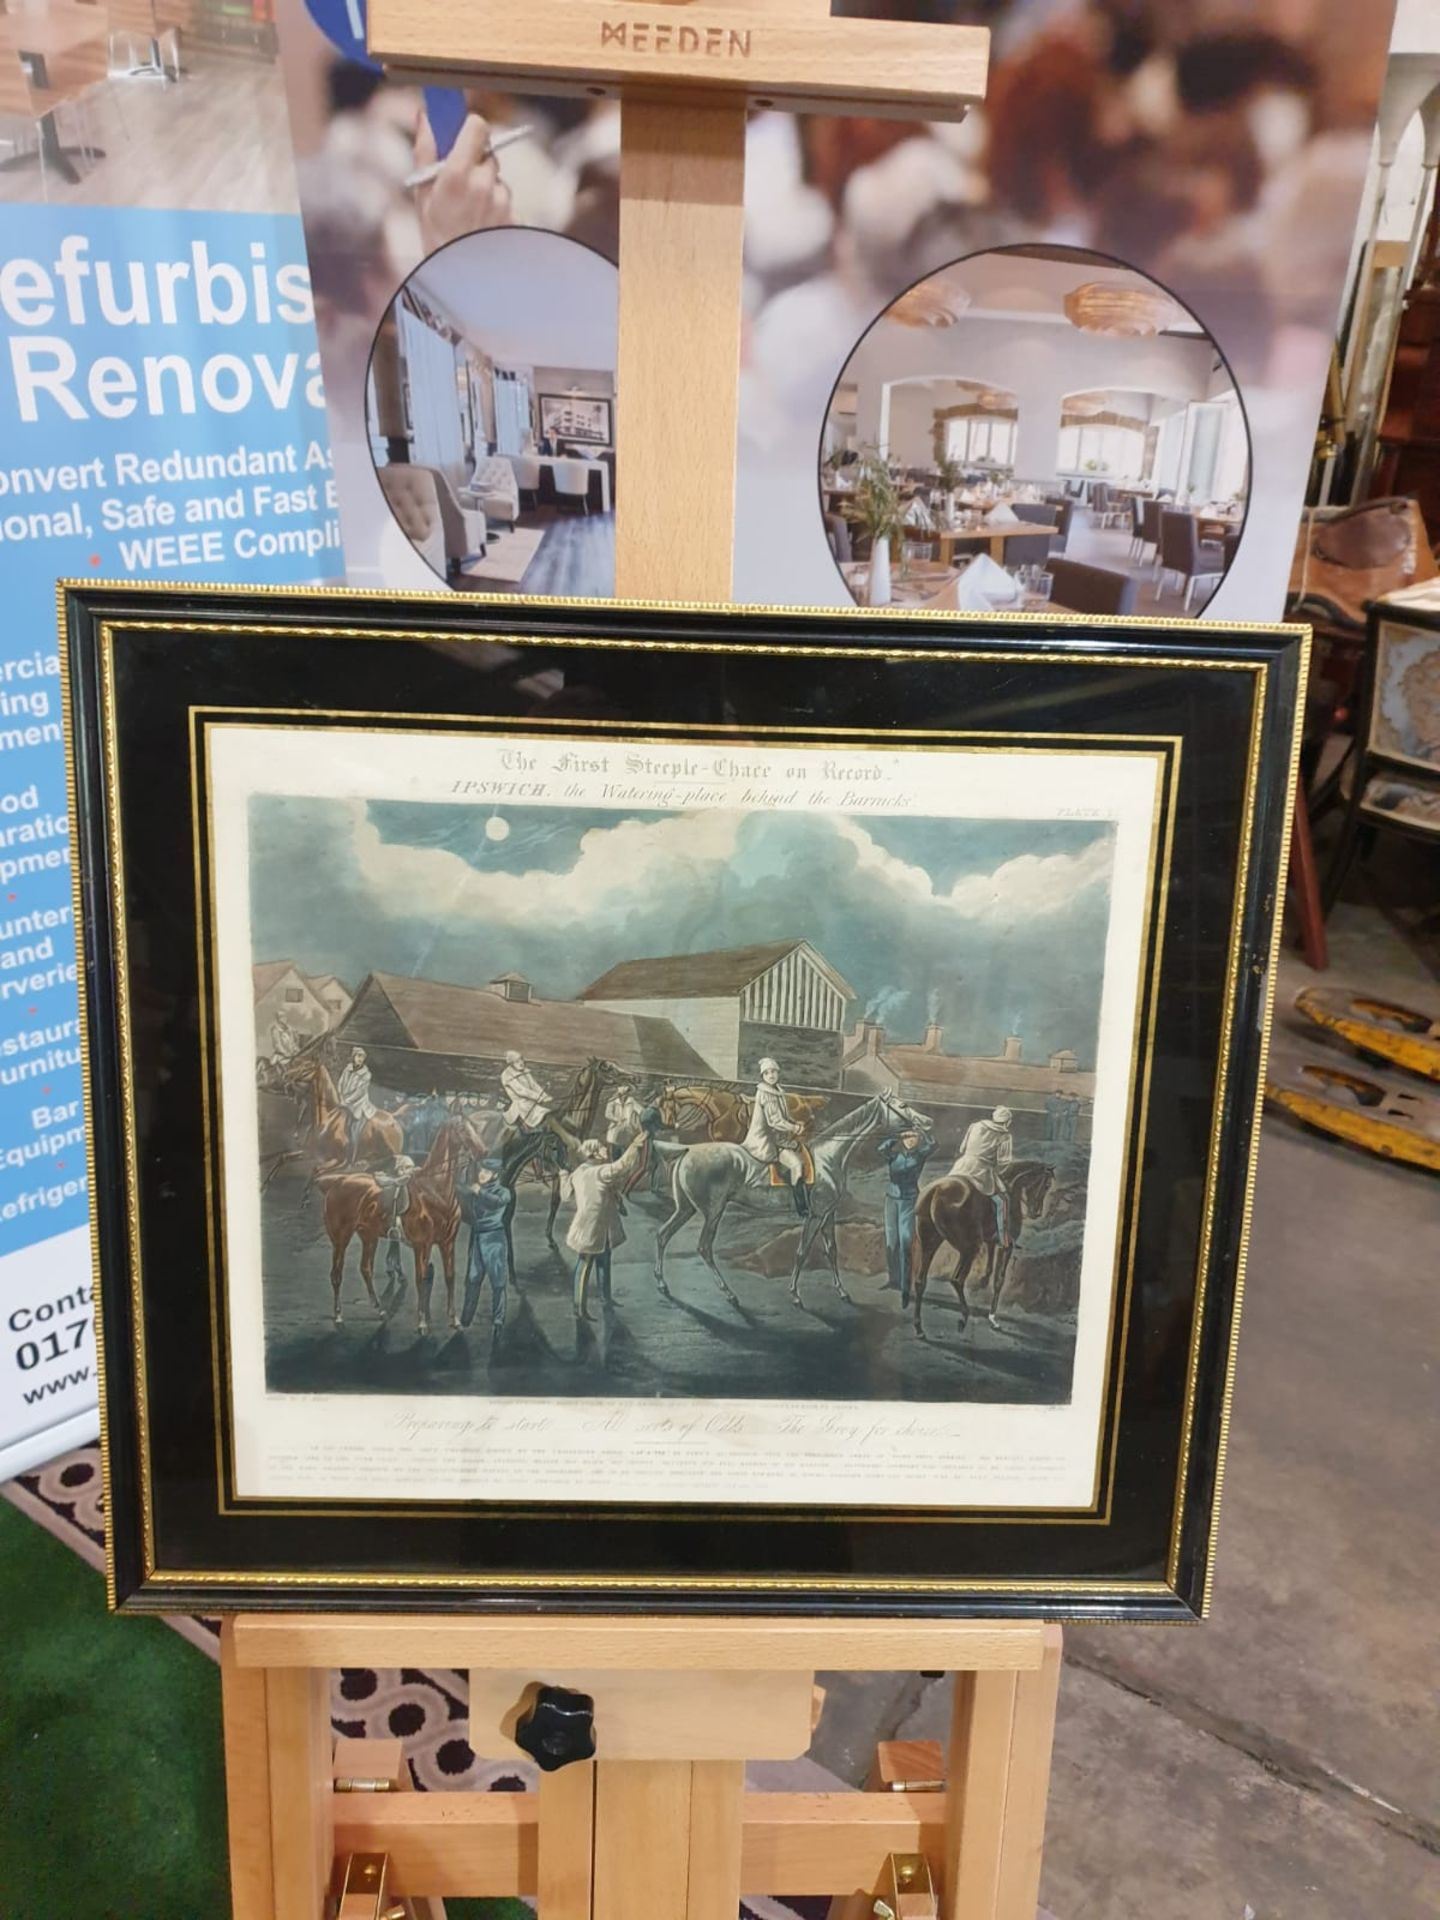 Framed vintage print .The First Steeplechase on Record - Ipswich, the watering place behind the